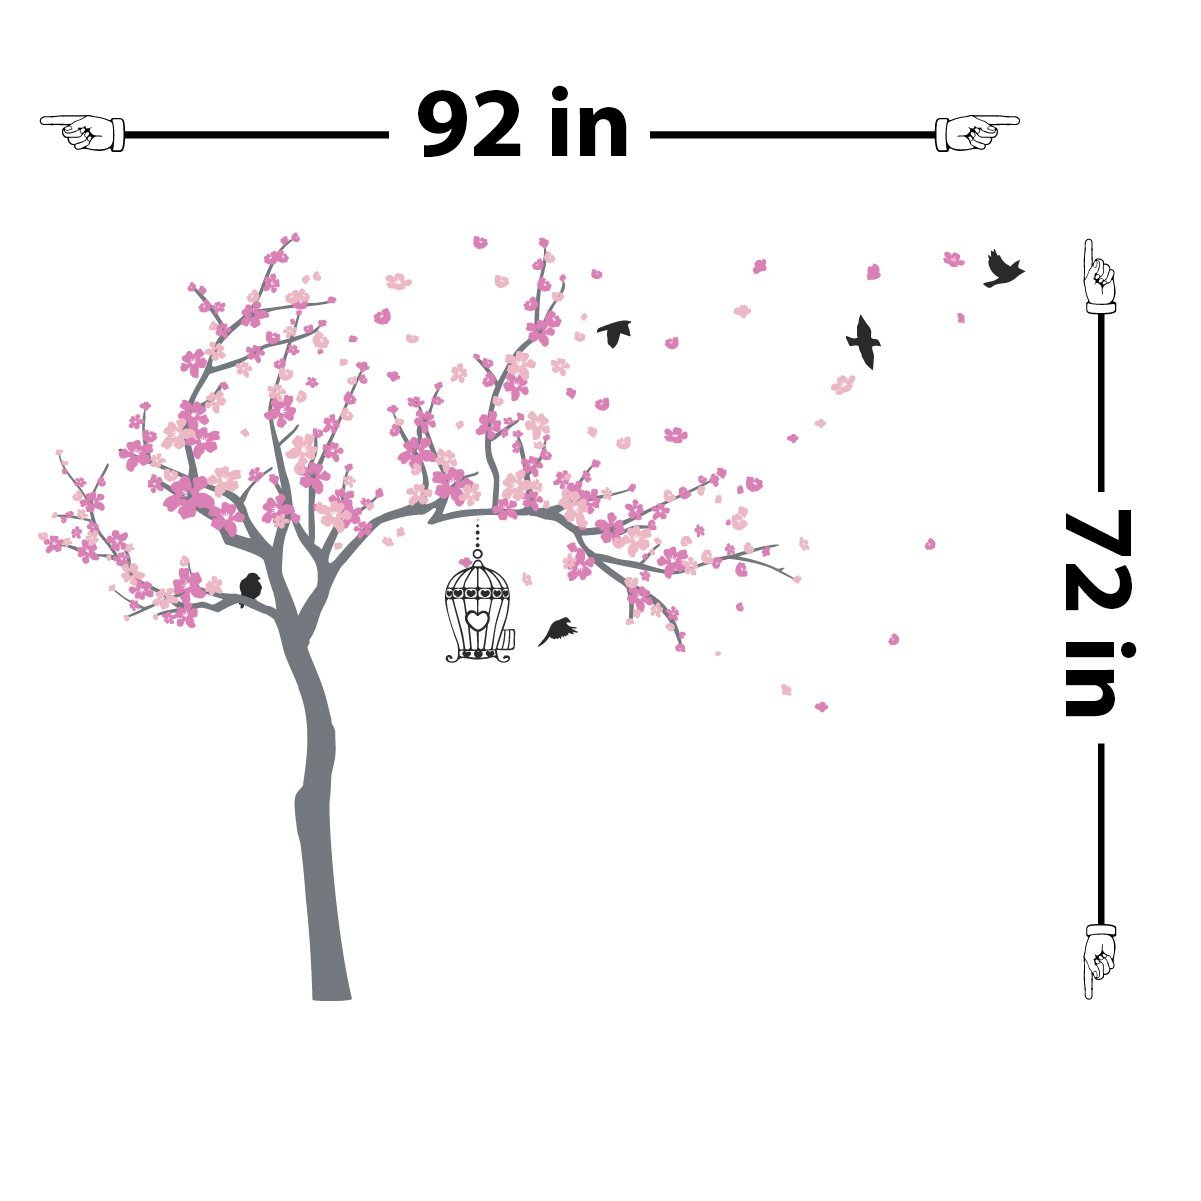 Japanese Cherry Blossom Birdhouse and Tree Large Wall Decal Sticker DIY Nursery Room Decor Art, Shades of Pink, 72x92 inches by The Decal Guru (Image #1)